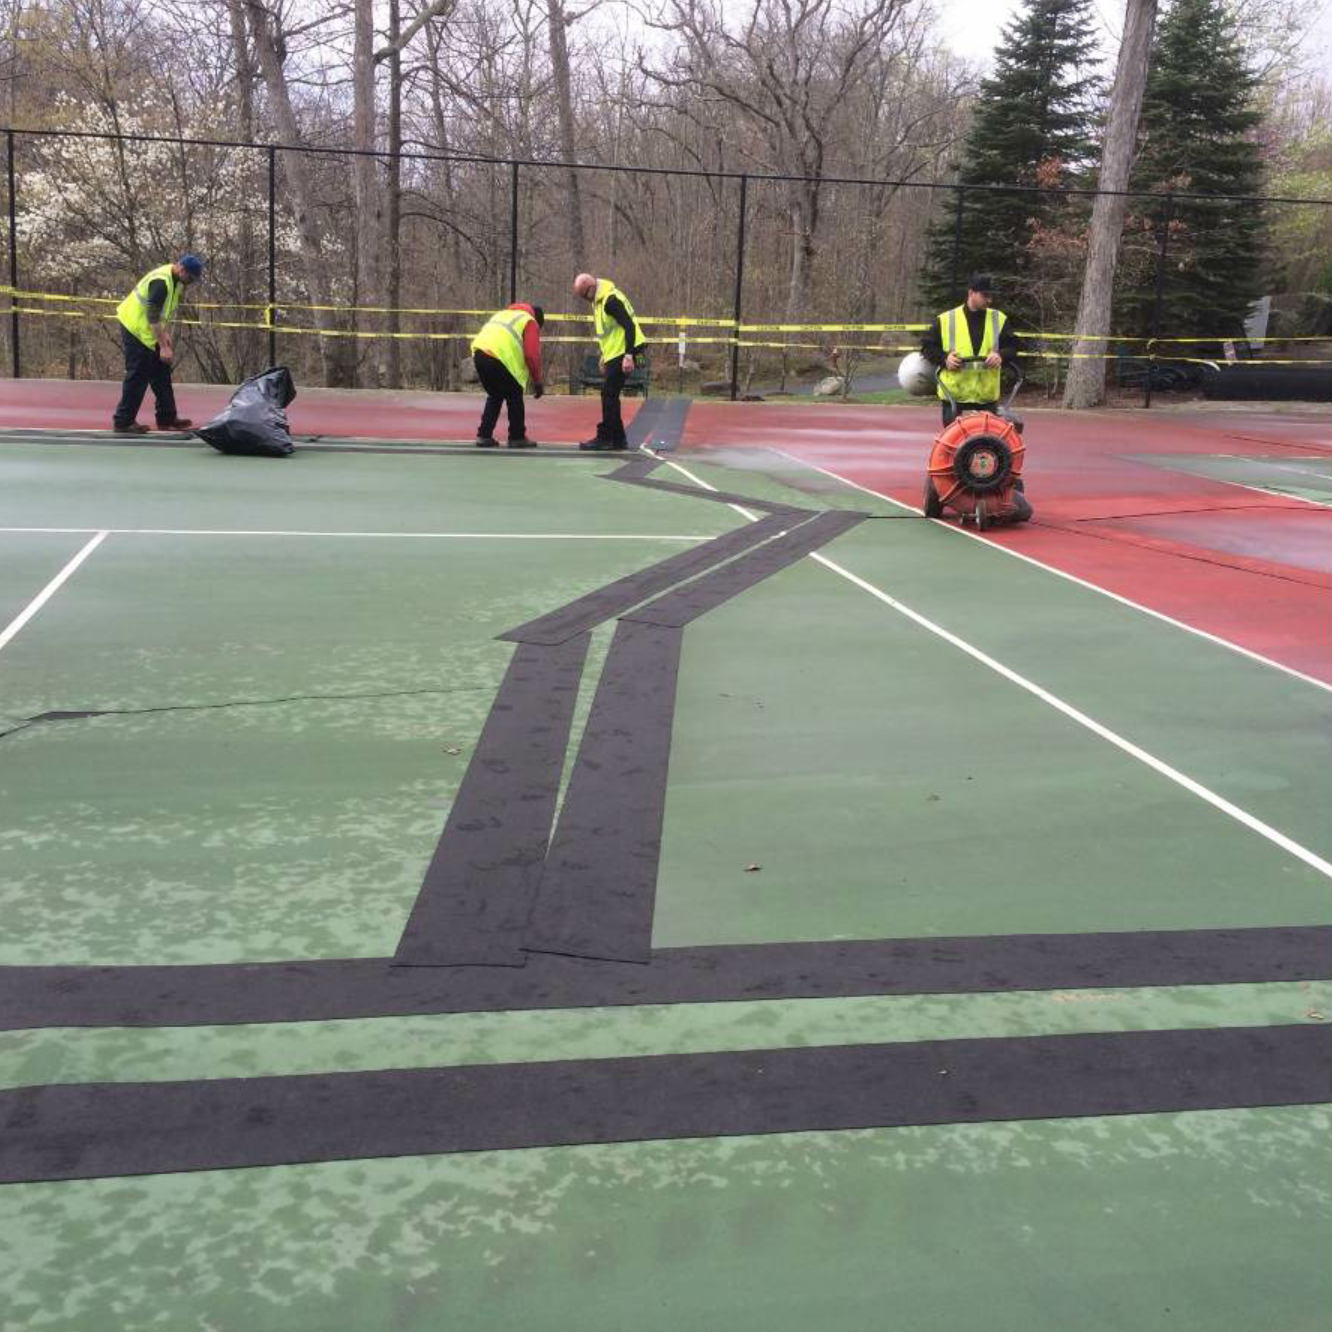 The project in Tuxedo included repairs, application of a membrane over all structural cracks, a leveling course and a new surface overlay, as well as color and striping.